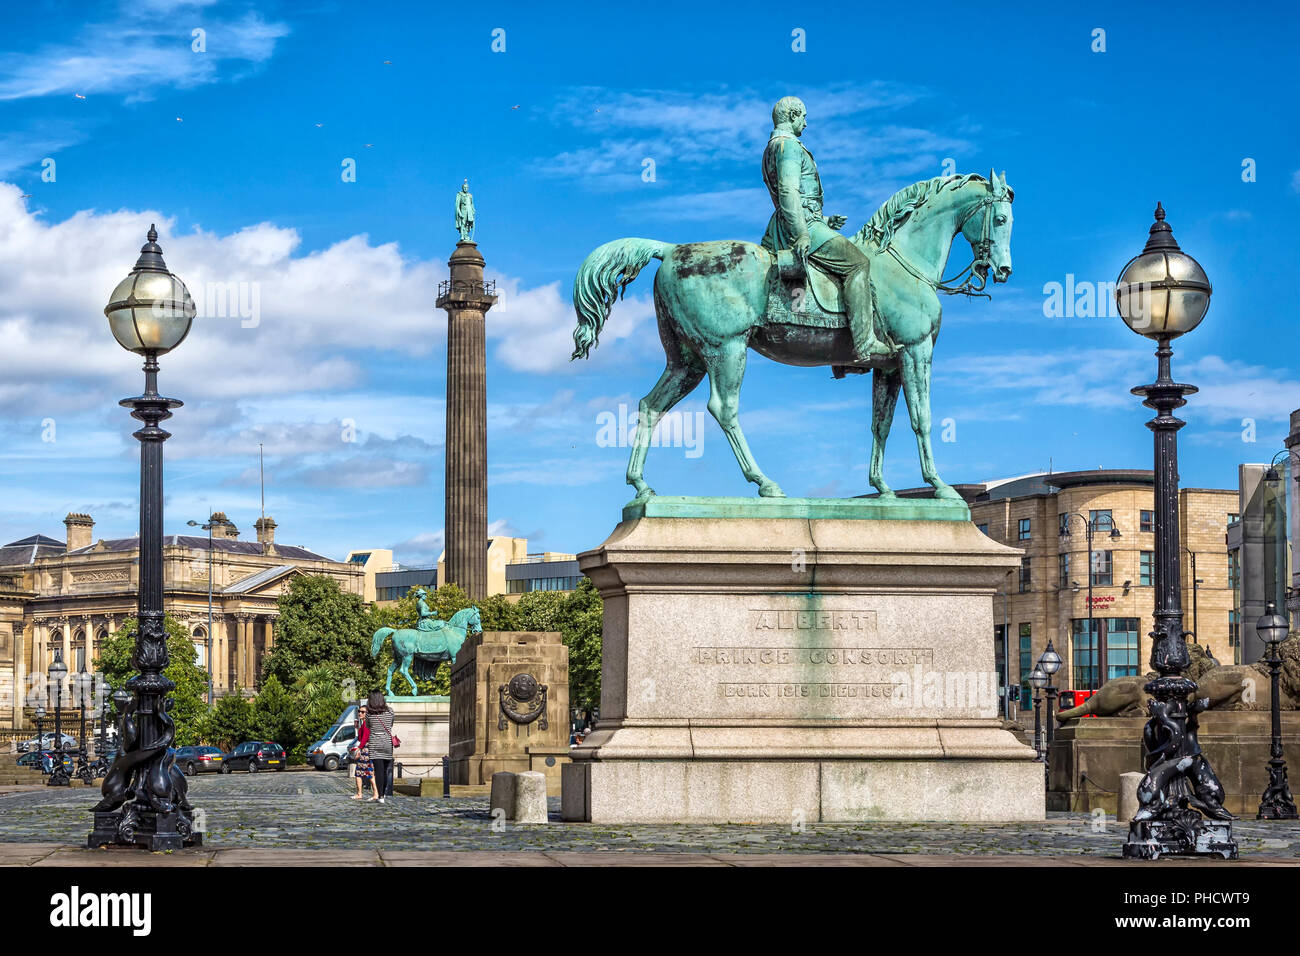 The statue of Prince Albert Consort on horseback positioned between old victorian street lamps. - Stock Image